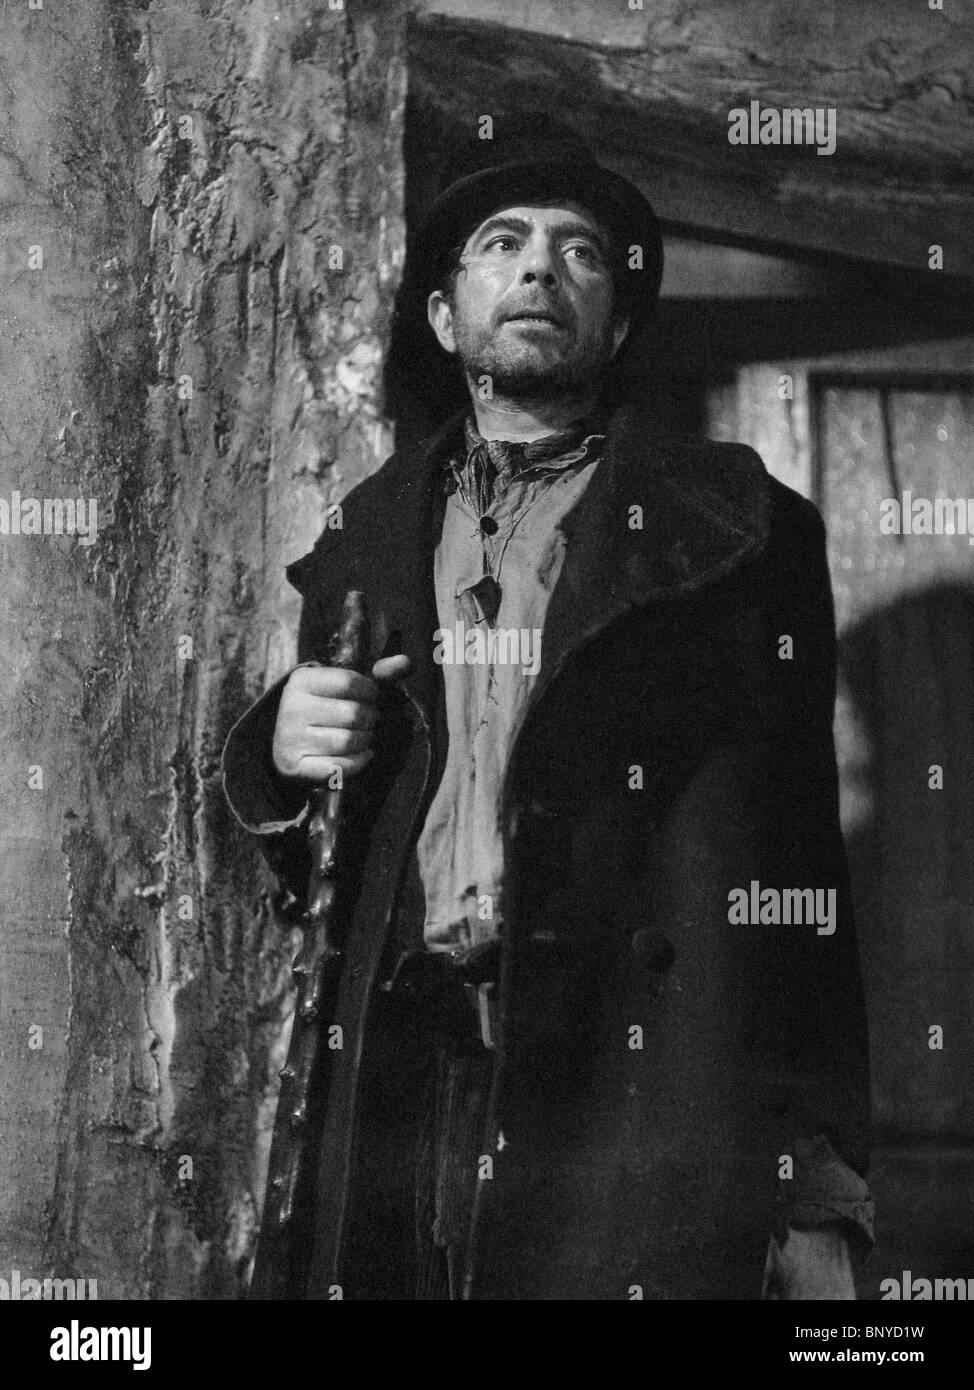 newton stock photos newton stock images alamy robert newton oliver twist 1948 stock image